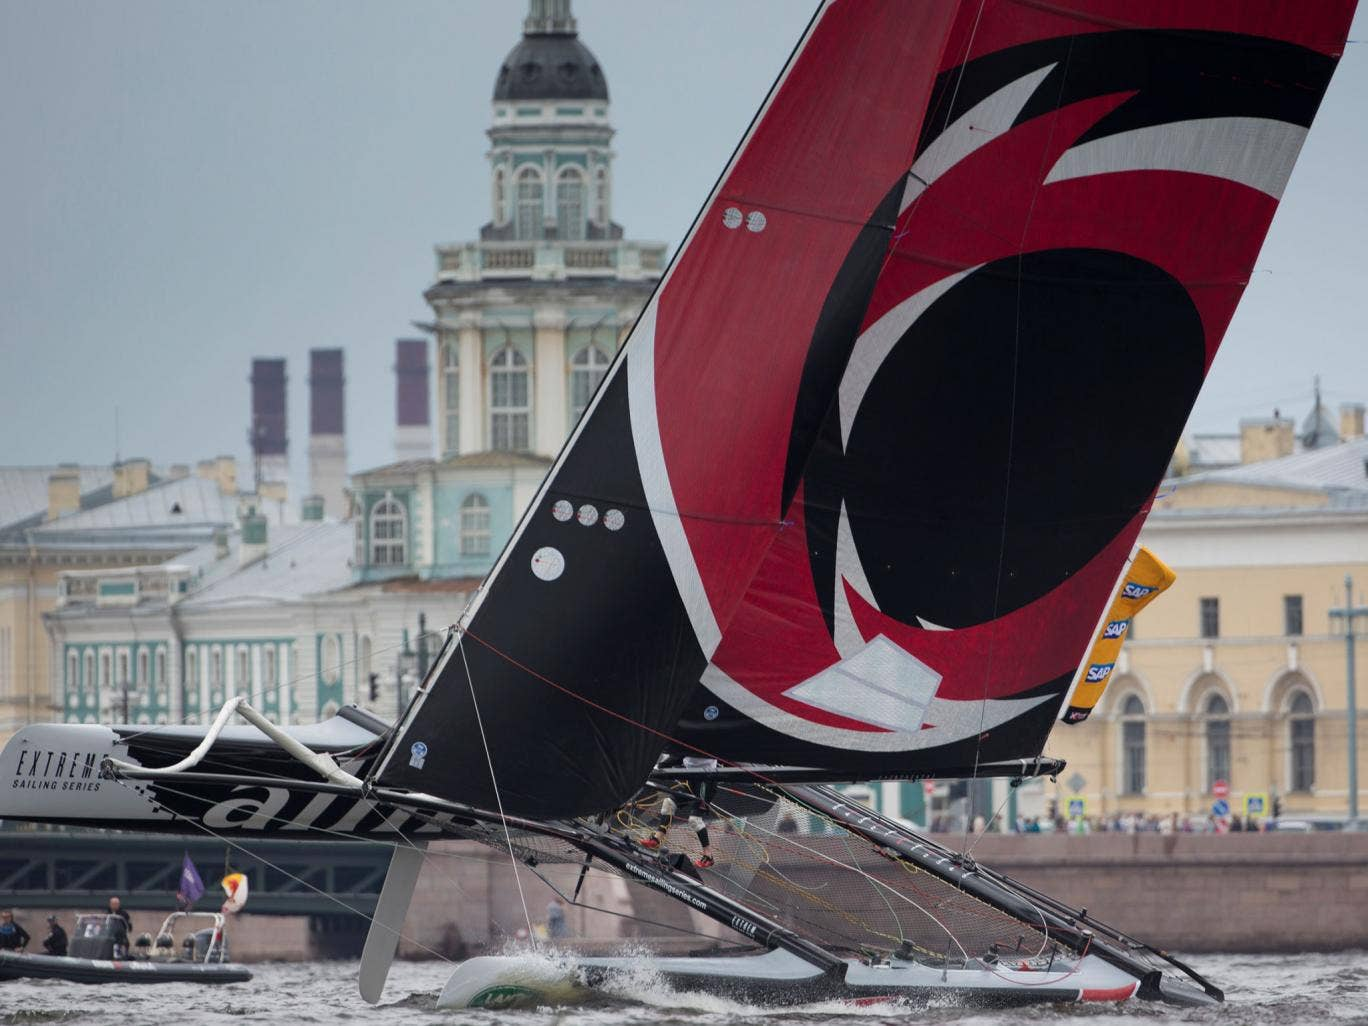 There was plenty of spectacle in St. Petersburg as Switzerland's Alinghi notched up another win in the Extreme Sailing Series